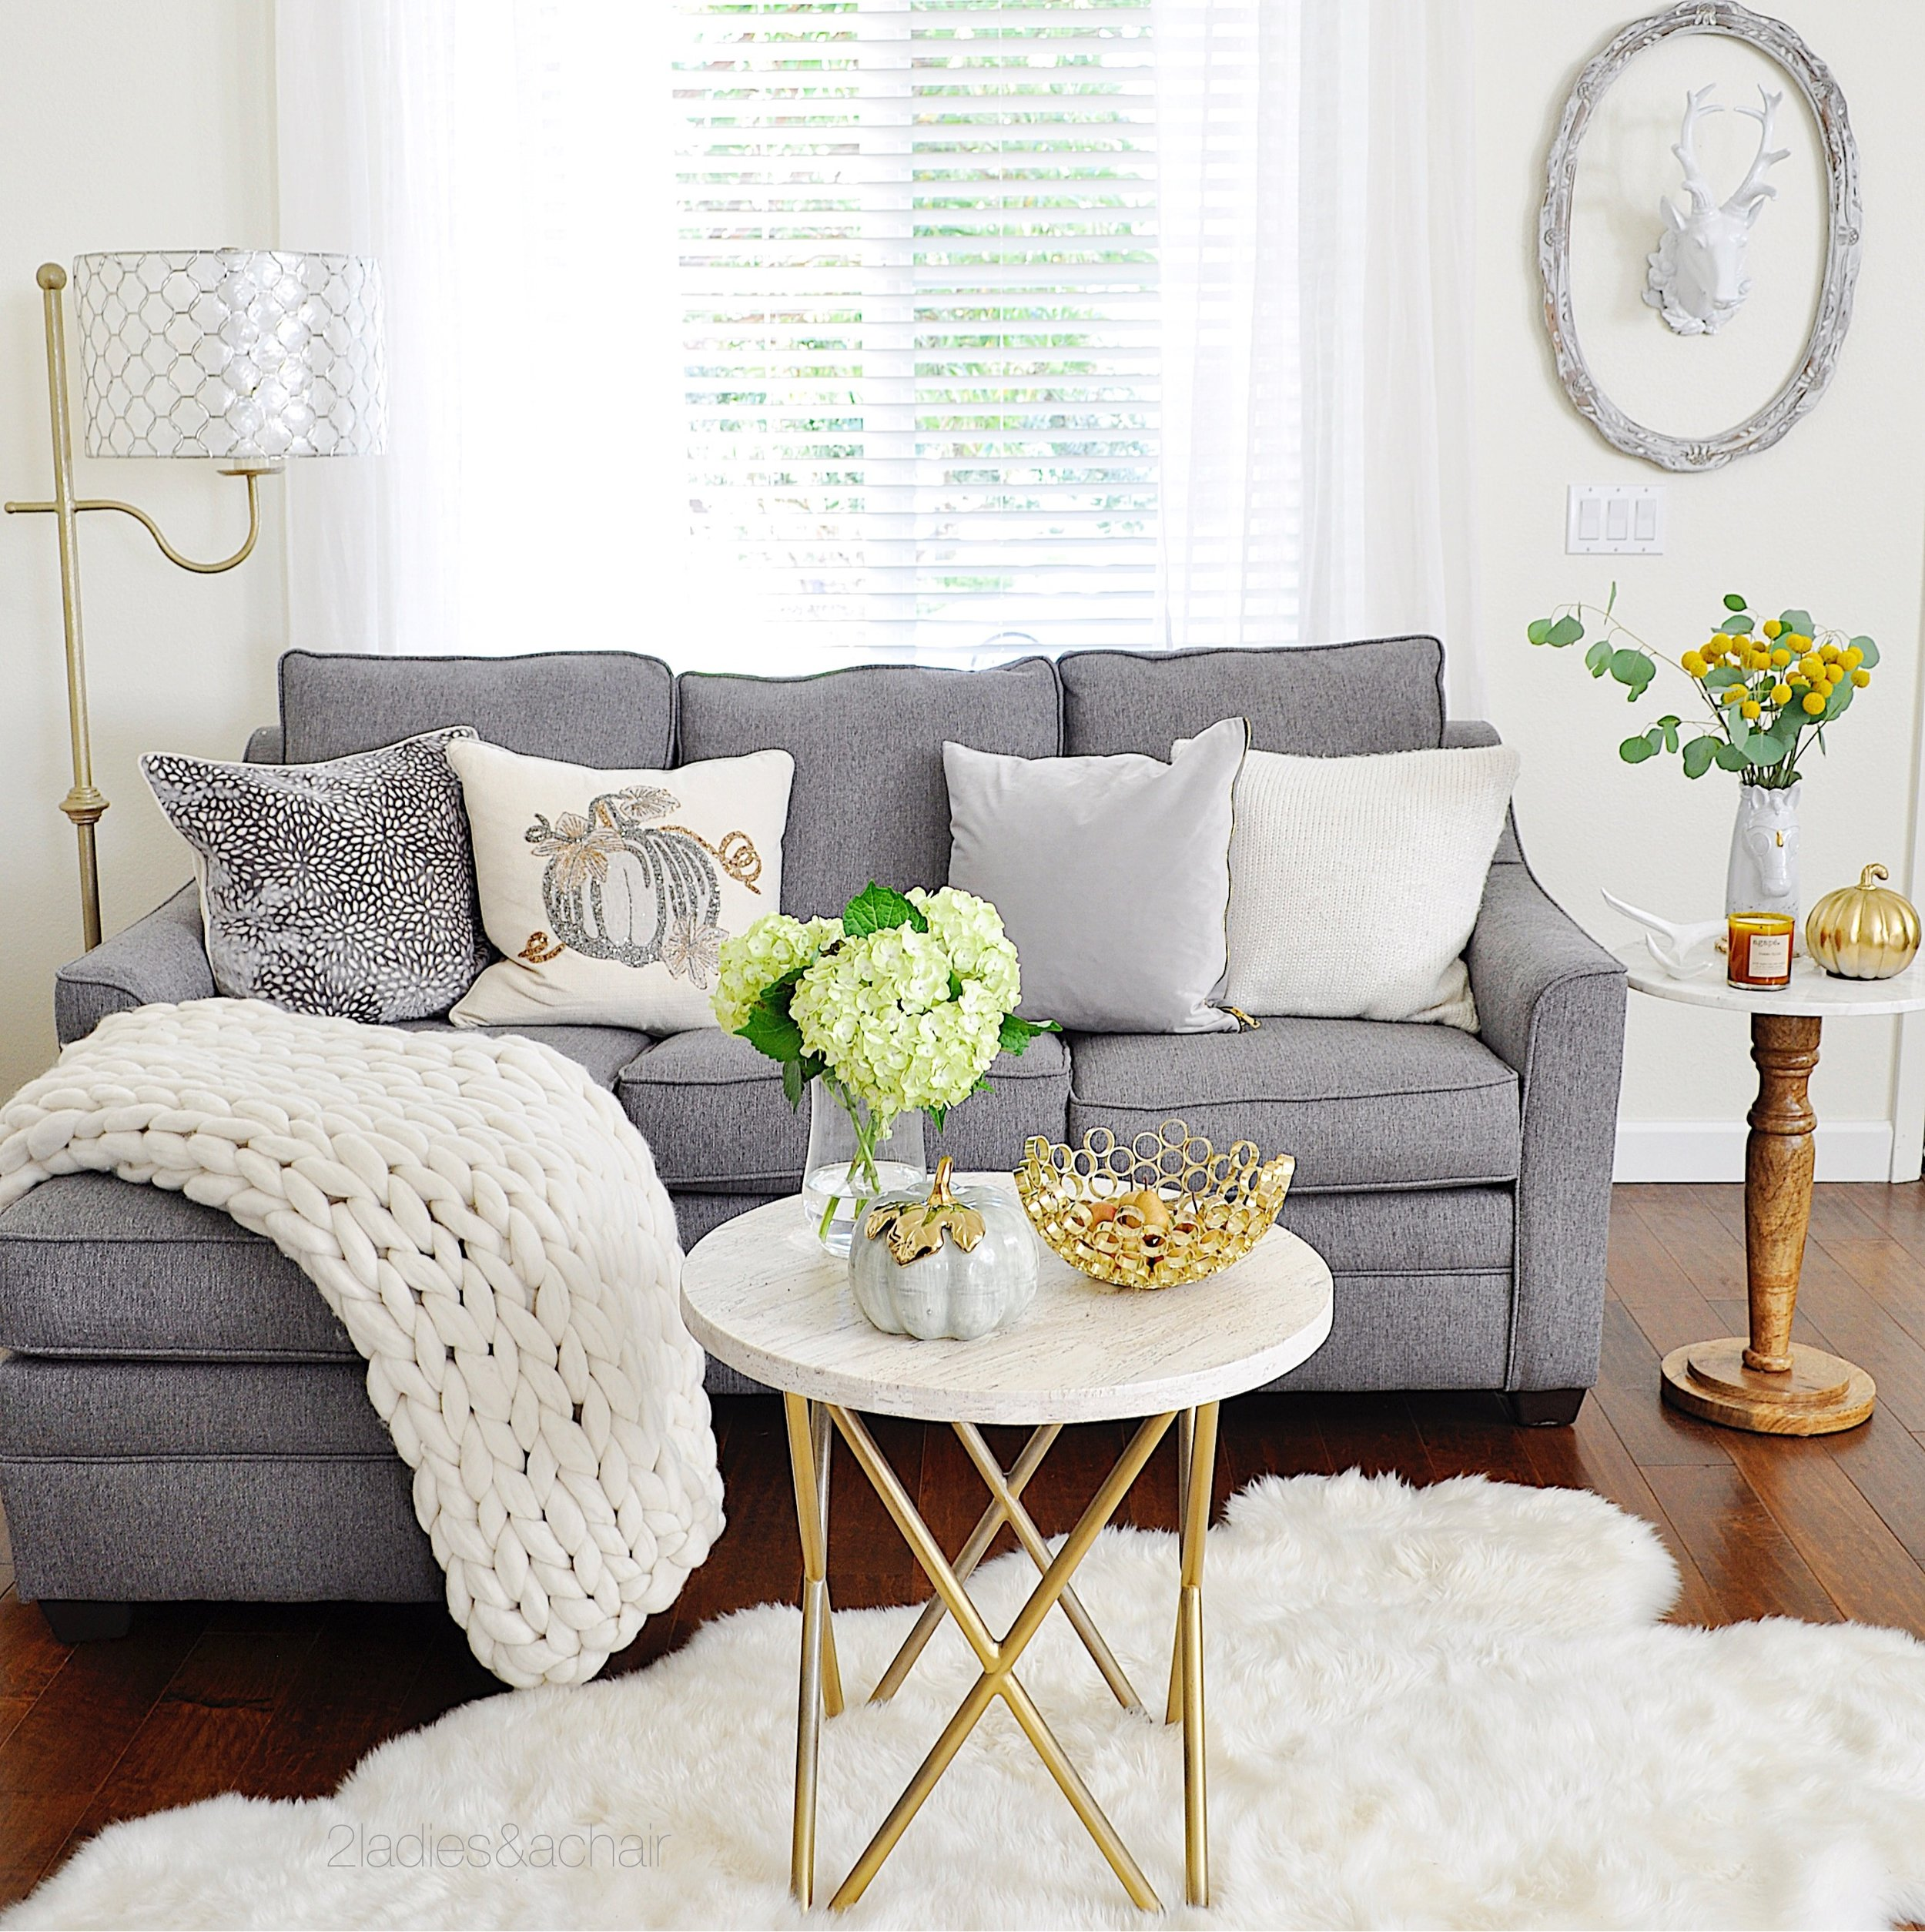 Living Room Ideas To Fall In Love With: Neutral Living Room Decor For Fall